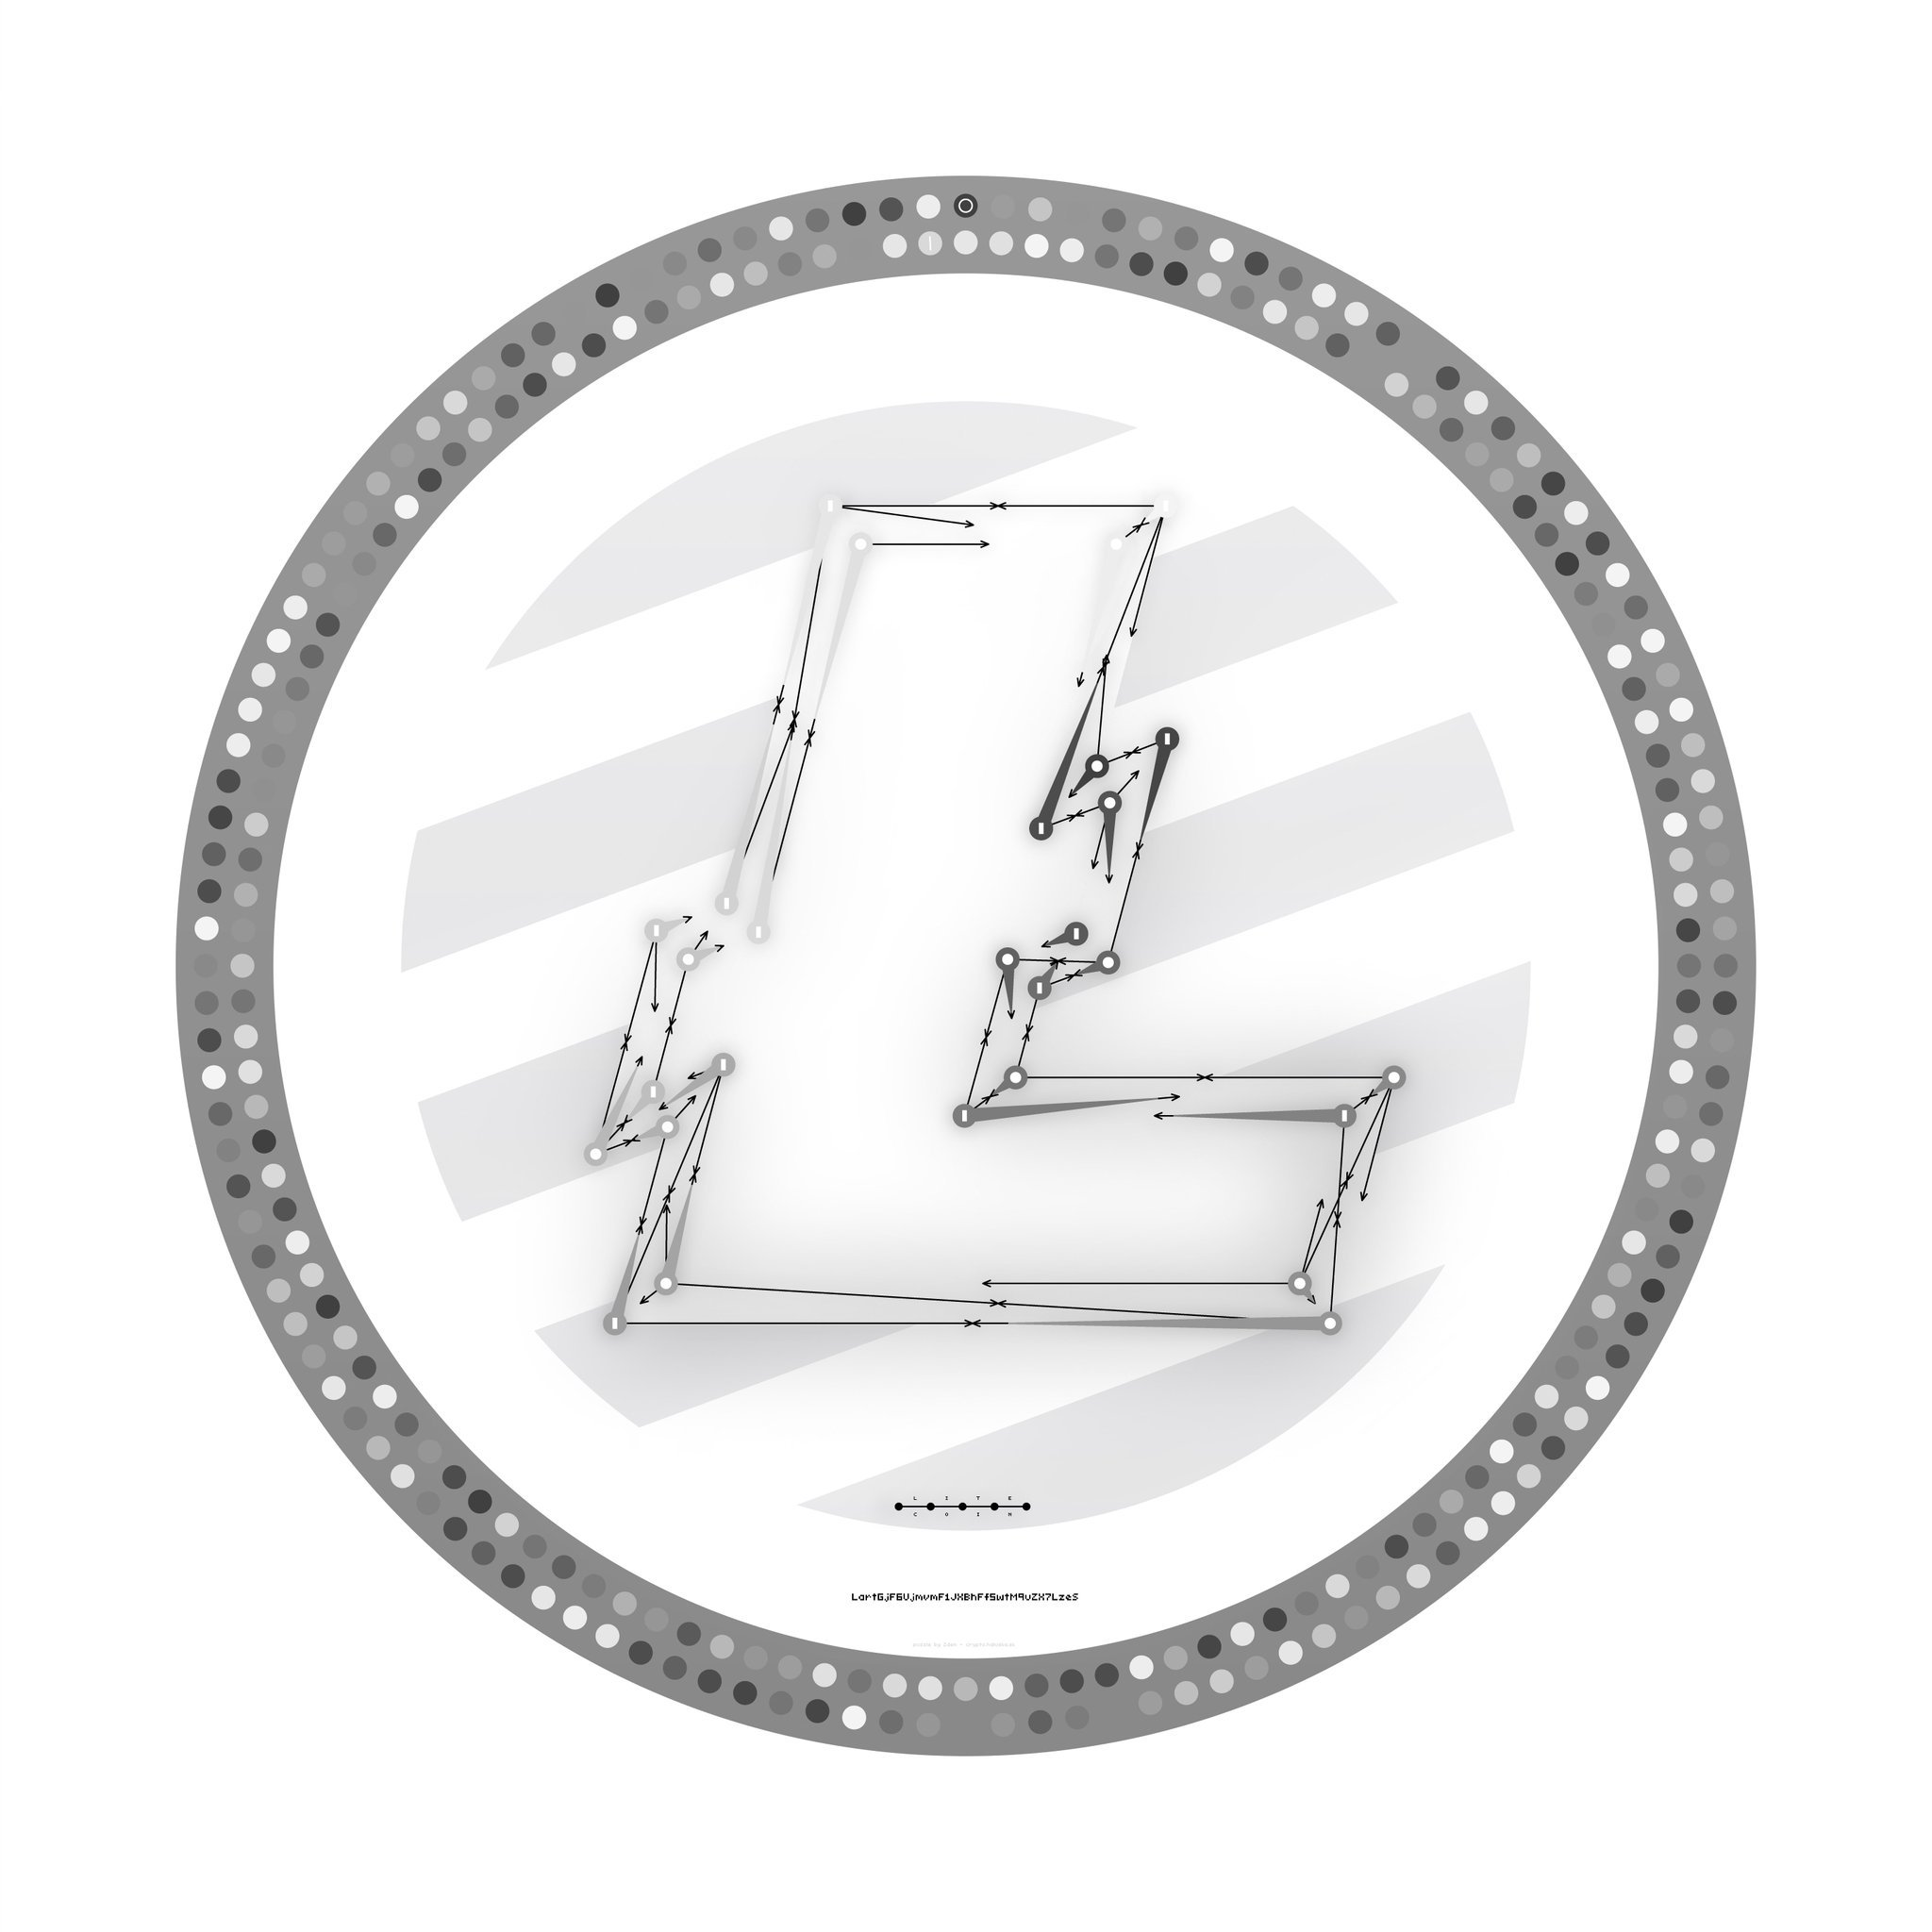 An image of the Litecoin Segwit puzzle.